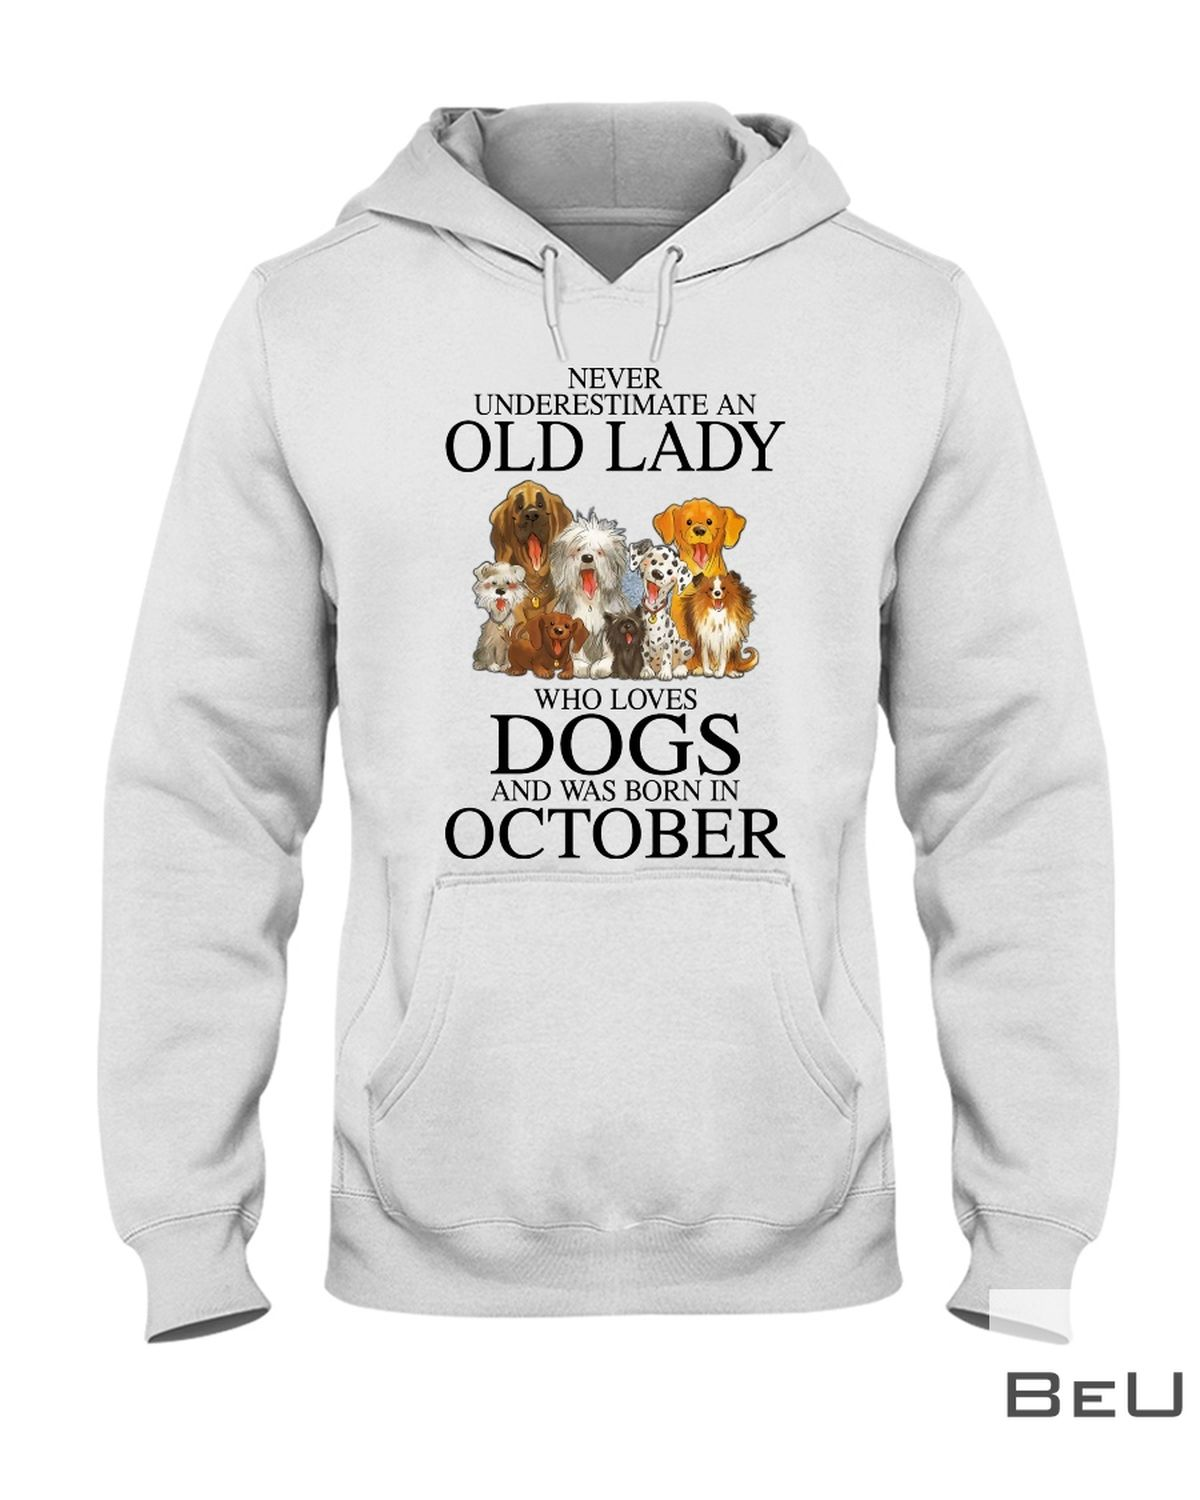 Never Underestimate An October Old Lady Who Loves Dogs Shirtz